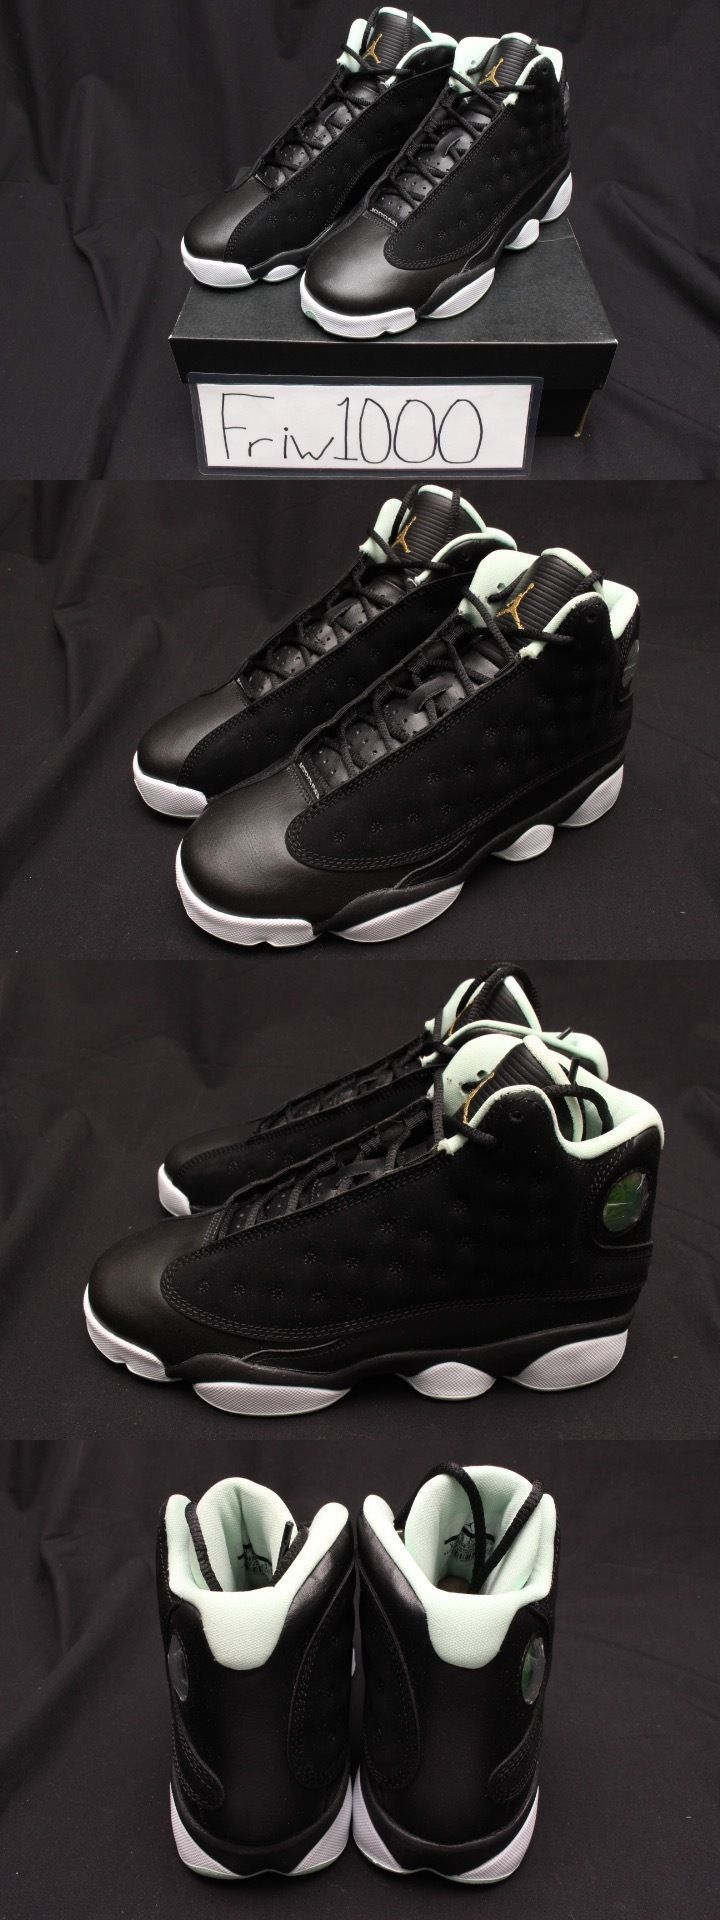 pretty nice 0ed5e 32e35 norway girls shoes 57974 nike girls air jordan 13 retro gs sizes black gold  mint 439358